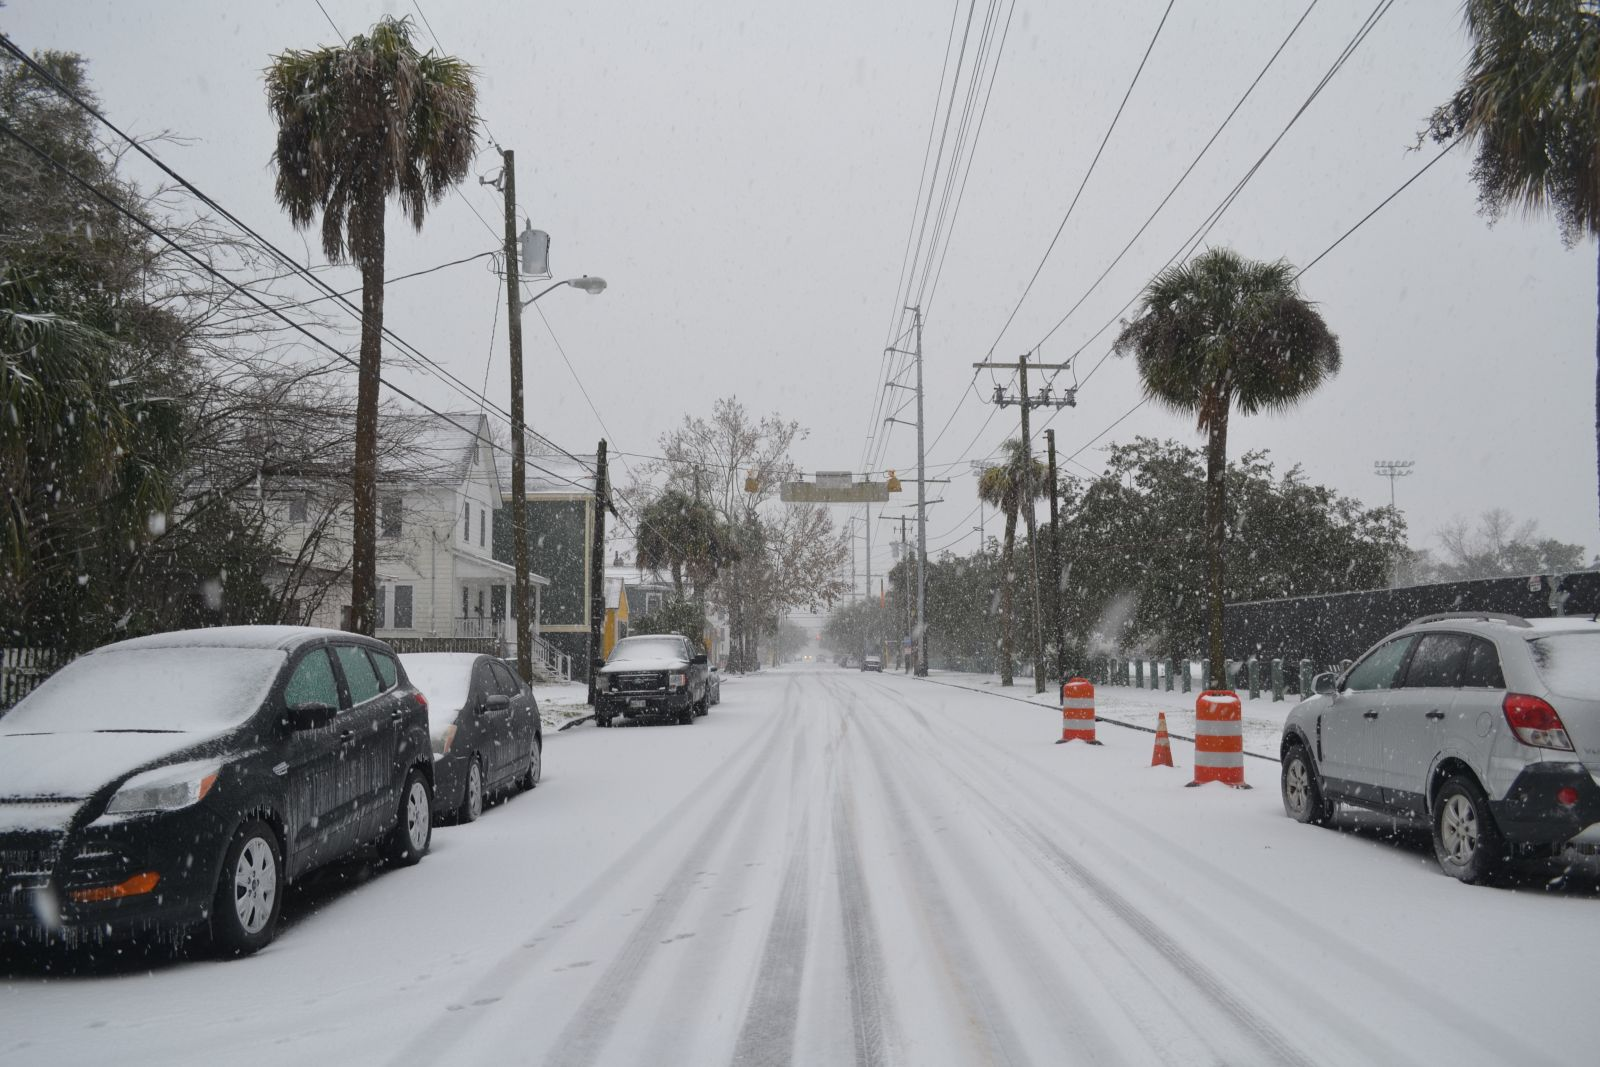 Snow covers President Street in Charleston today as a winter storm blanketed the area with snow and ice. (Photo/Liz Segrist)